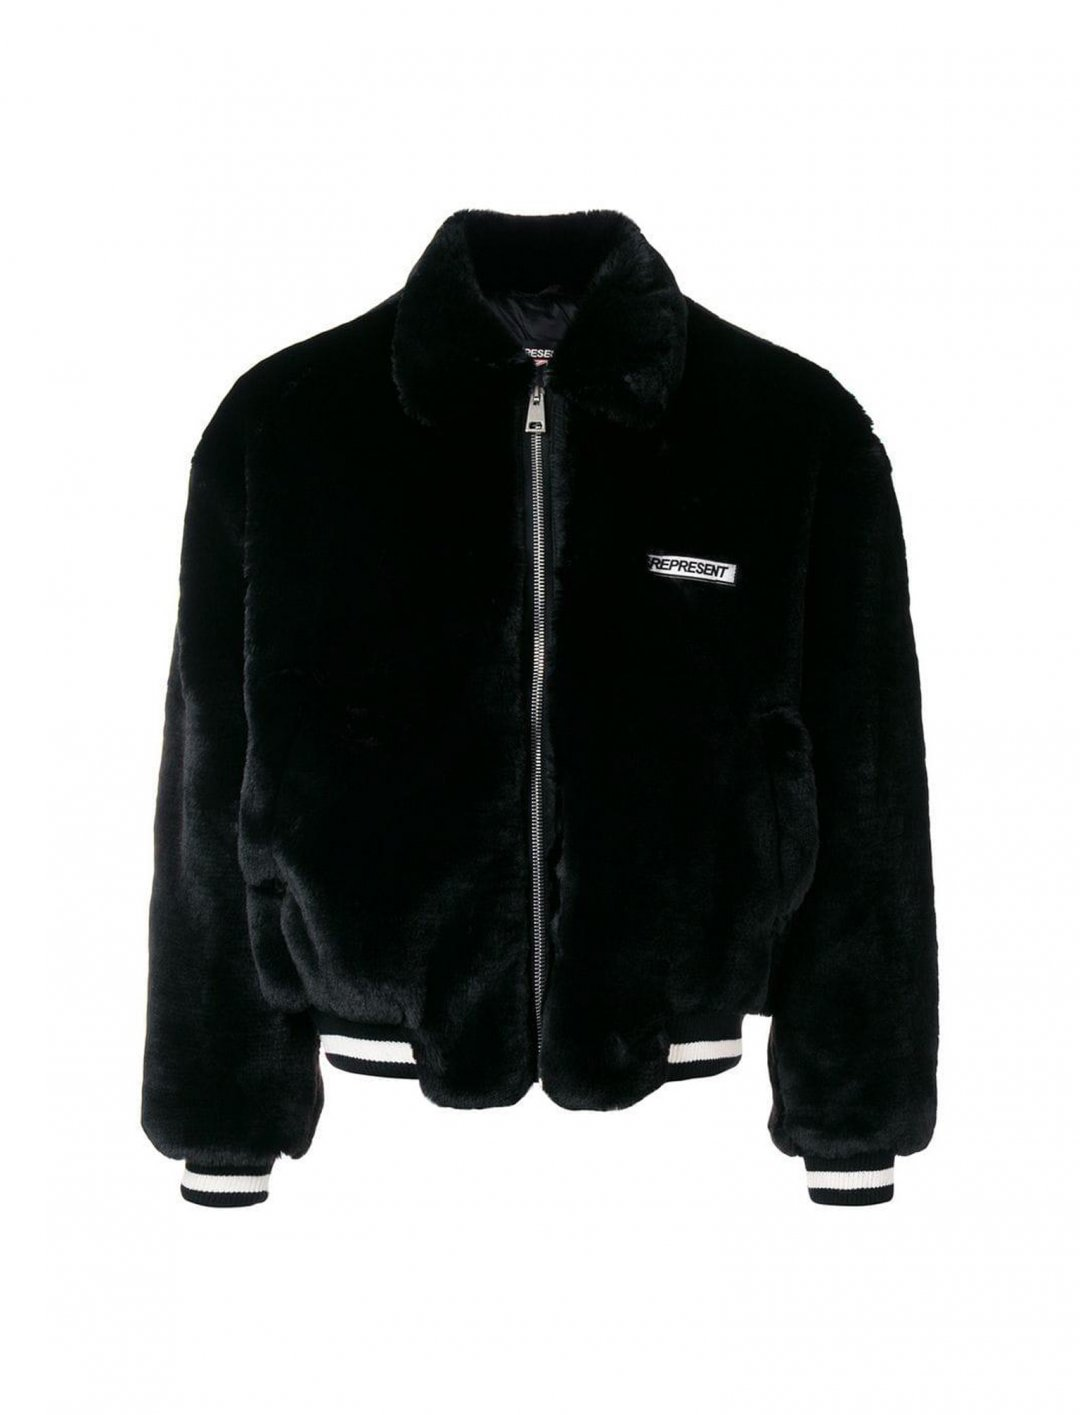 "Lotto Boyzz' Faux Fur Bomber Jacket {""id"":5,""product_section_id"":1,""name"":""Clothing"",""order"":5} Represent"